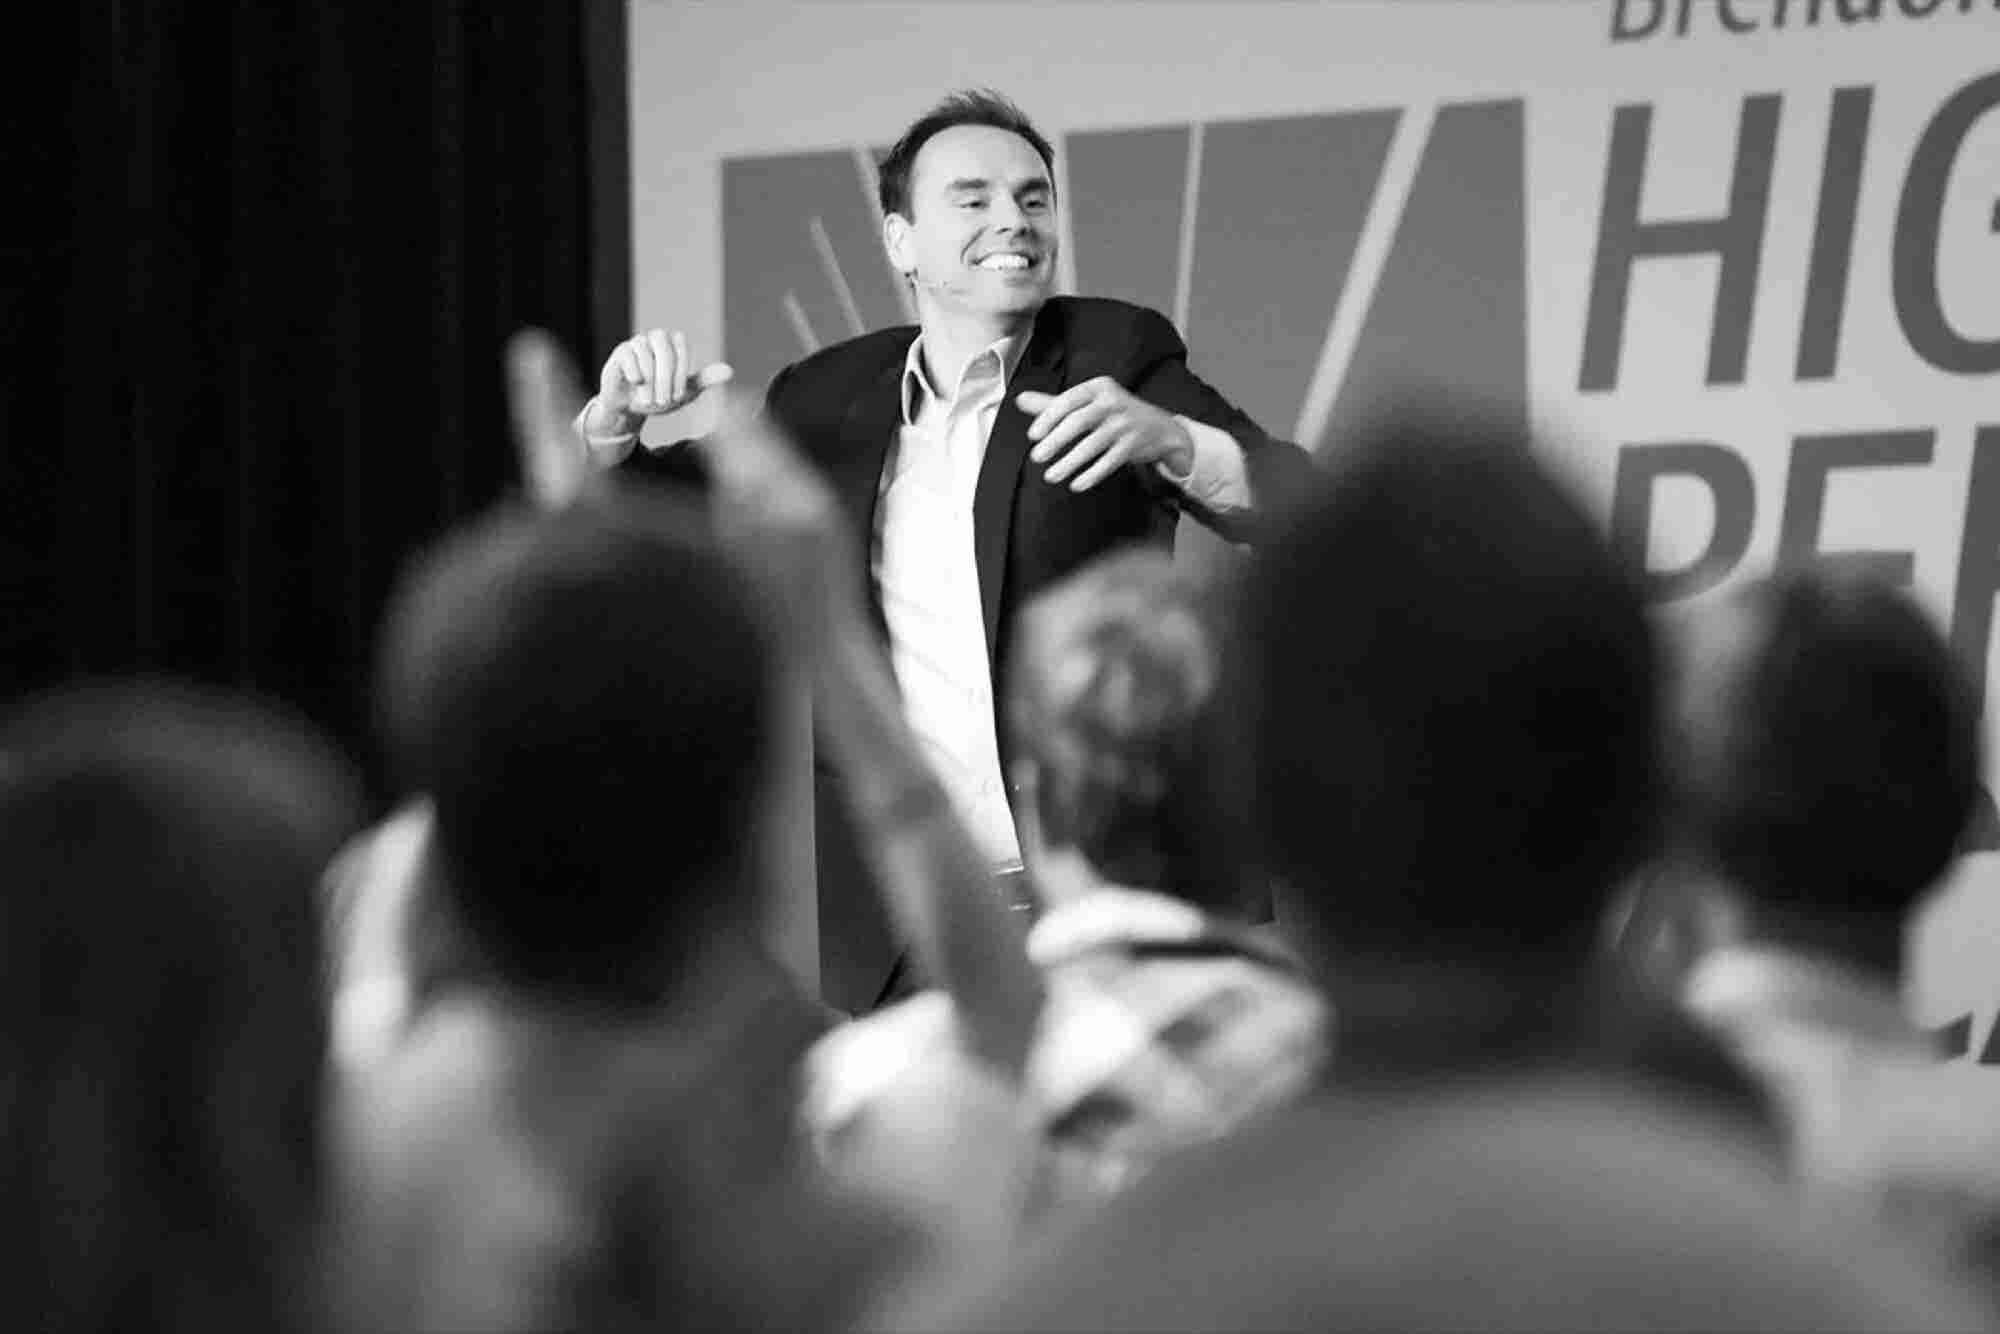 Infusionsoft, Salesforce, Brendon Burchard and Ken Courtright Have All Proved That Money Follows Mission